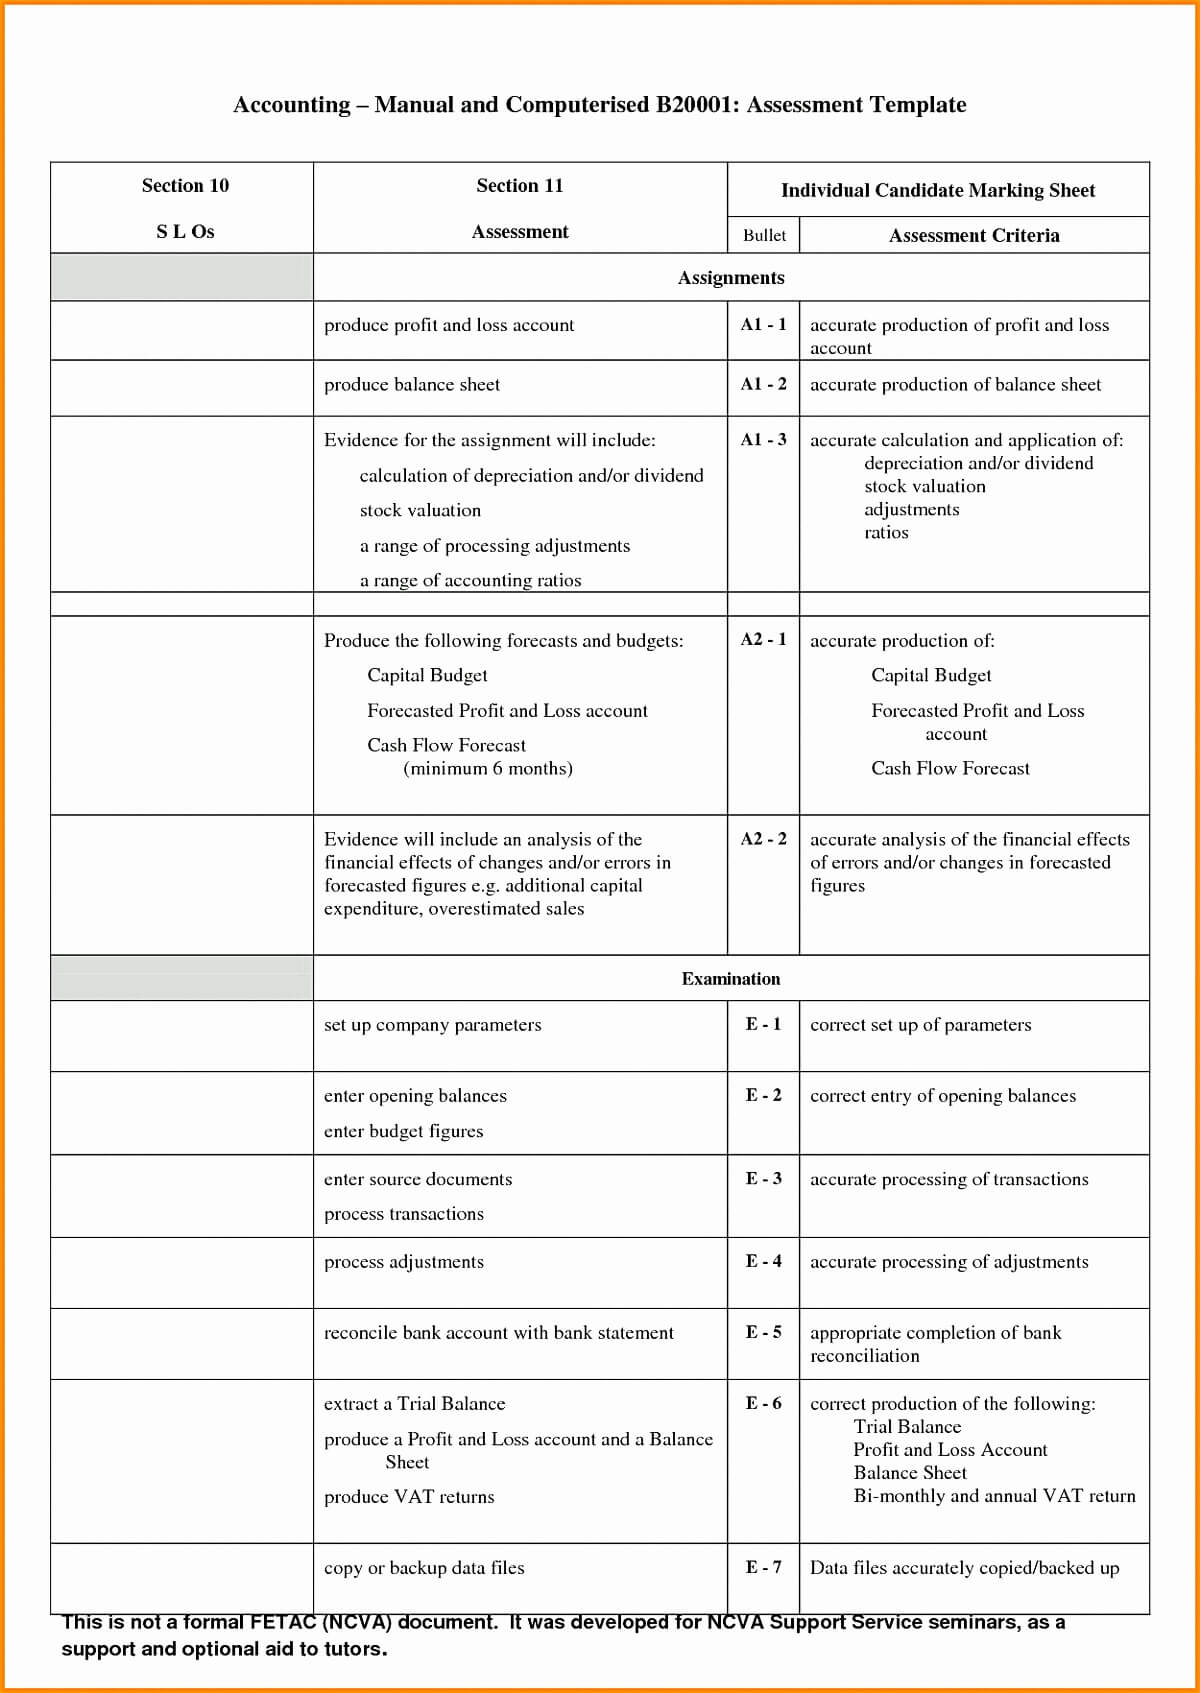 Business Valuation Report Template Worksheet Model Xls Small Regarding Business Valuation Report Template Worksheet